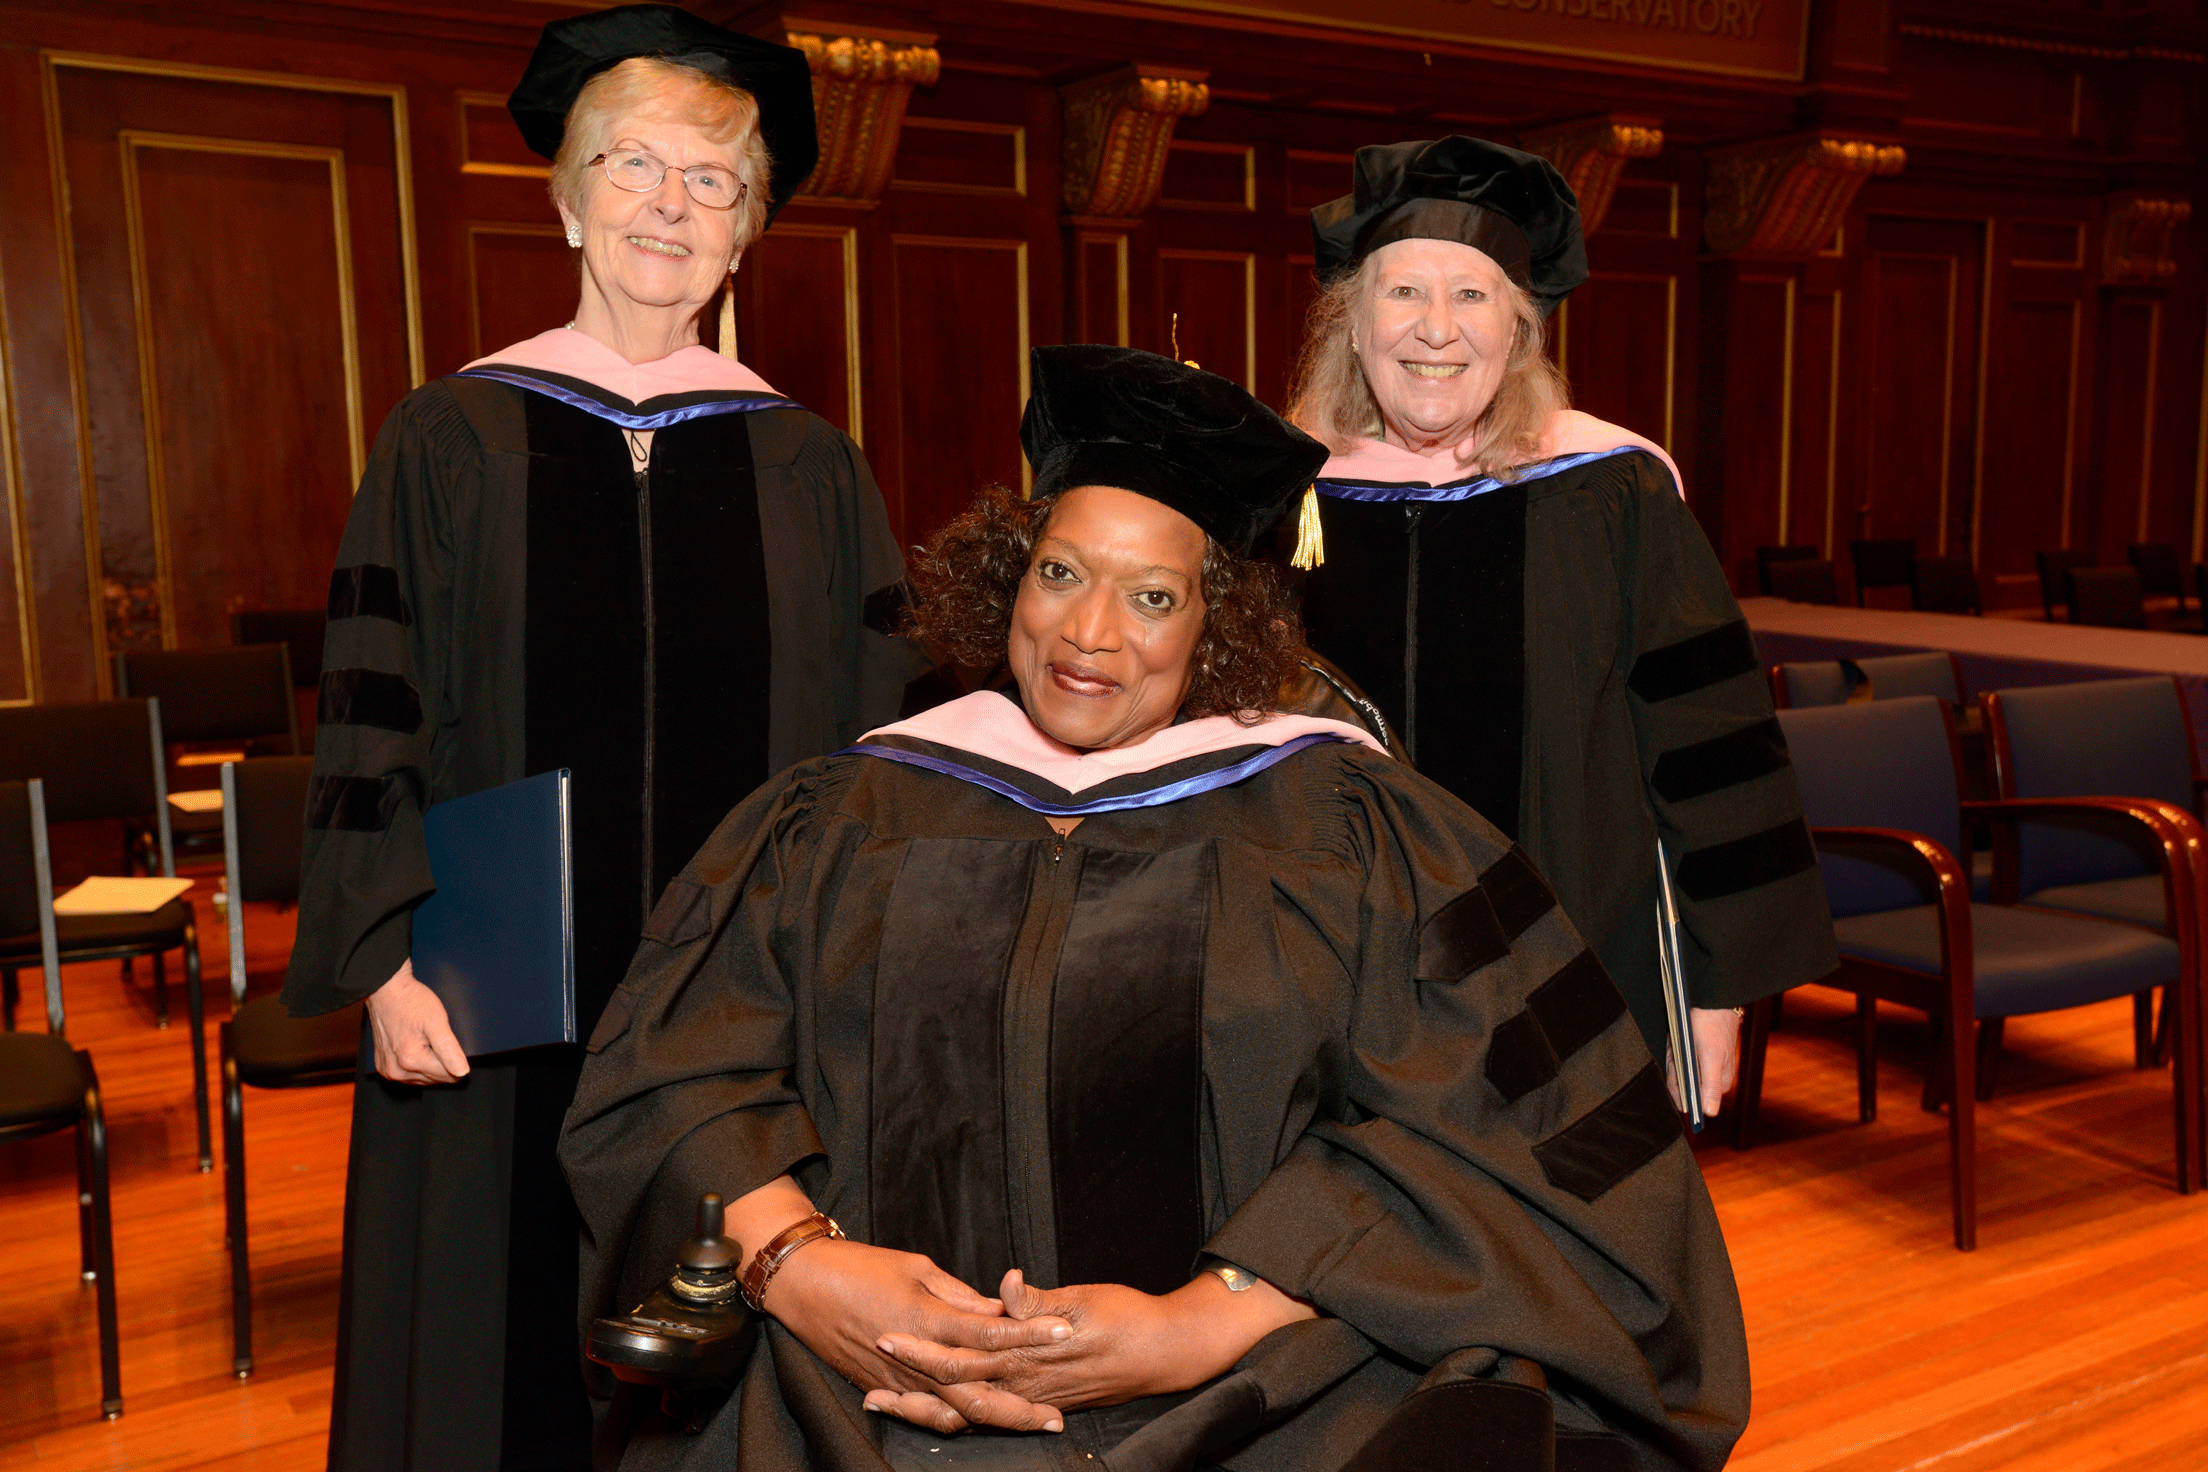 Jean Morrow, Jessye Norman, and Ursula Oppens